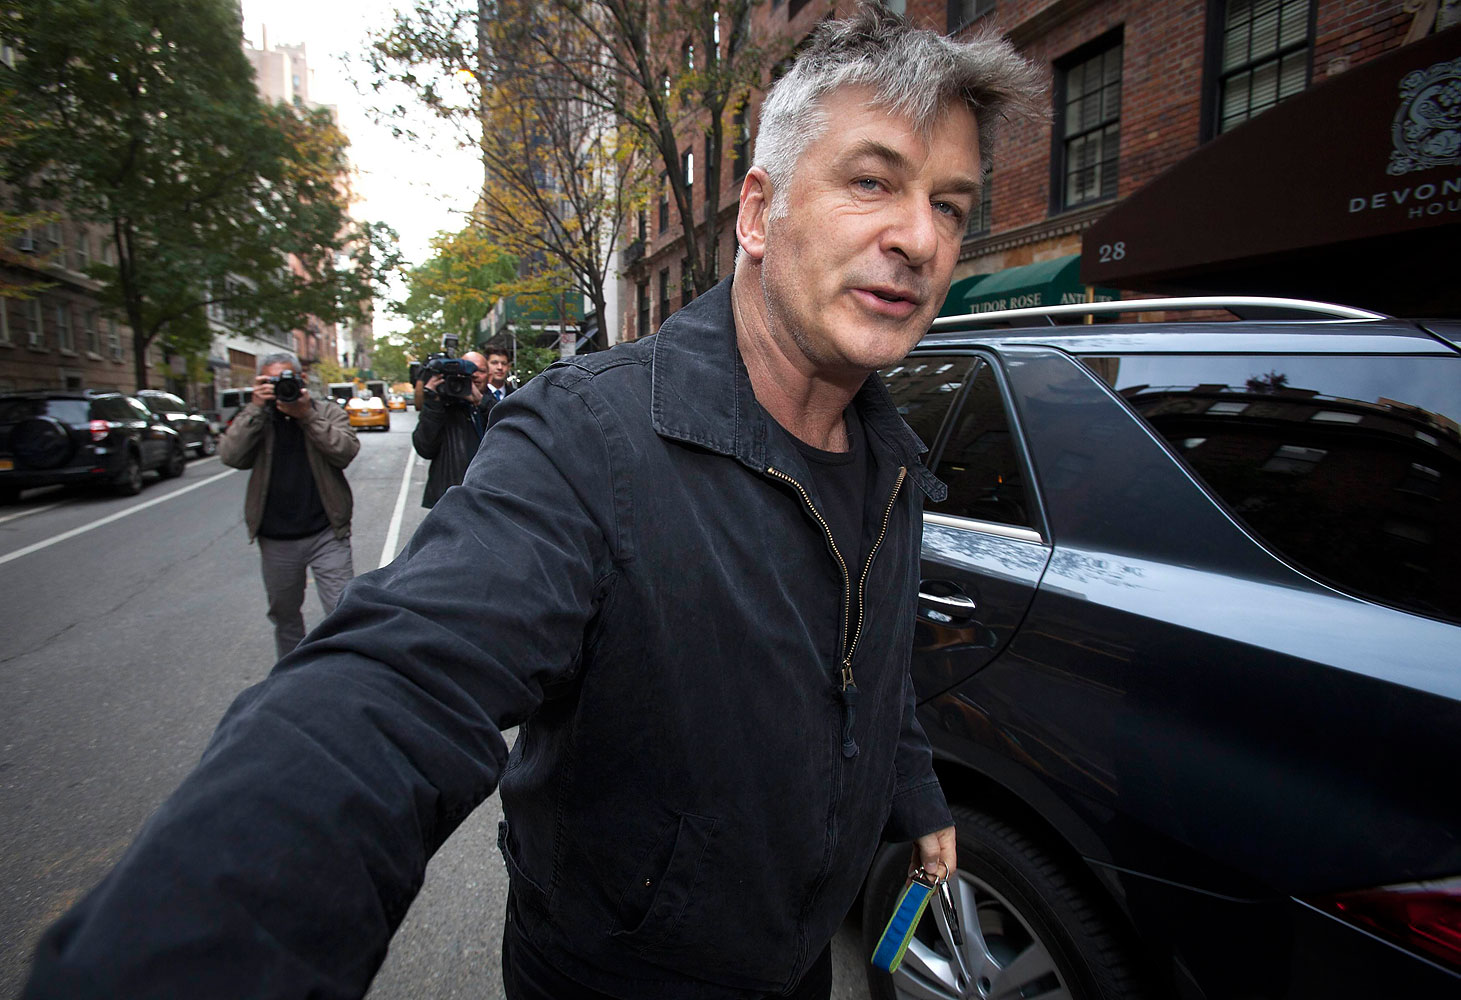 Actor Alec Baldwin shoves a photographer and tells him to move out of his way after he arrived at his home in New York on November 15, 2013.